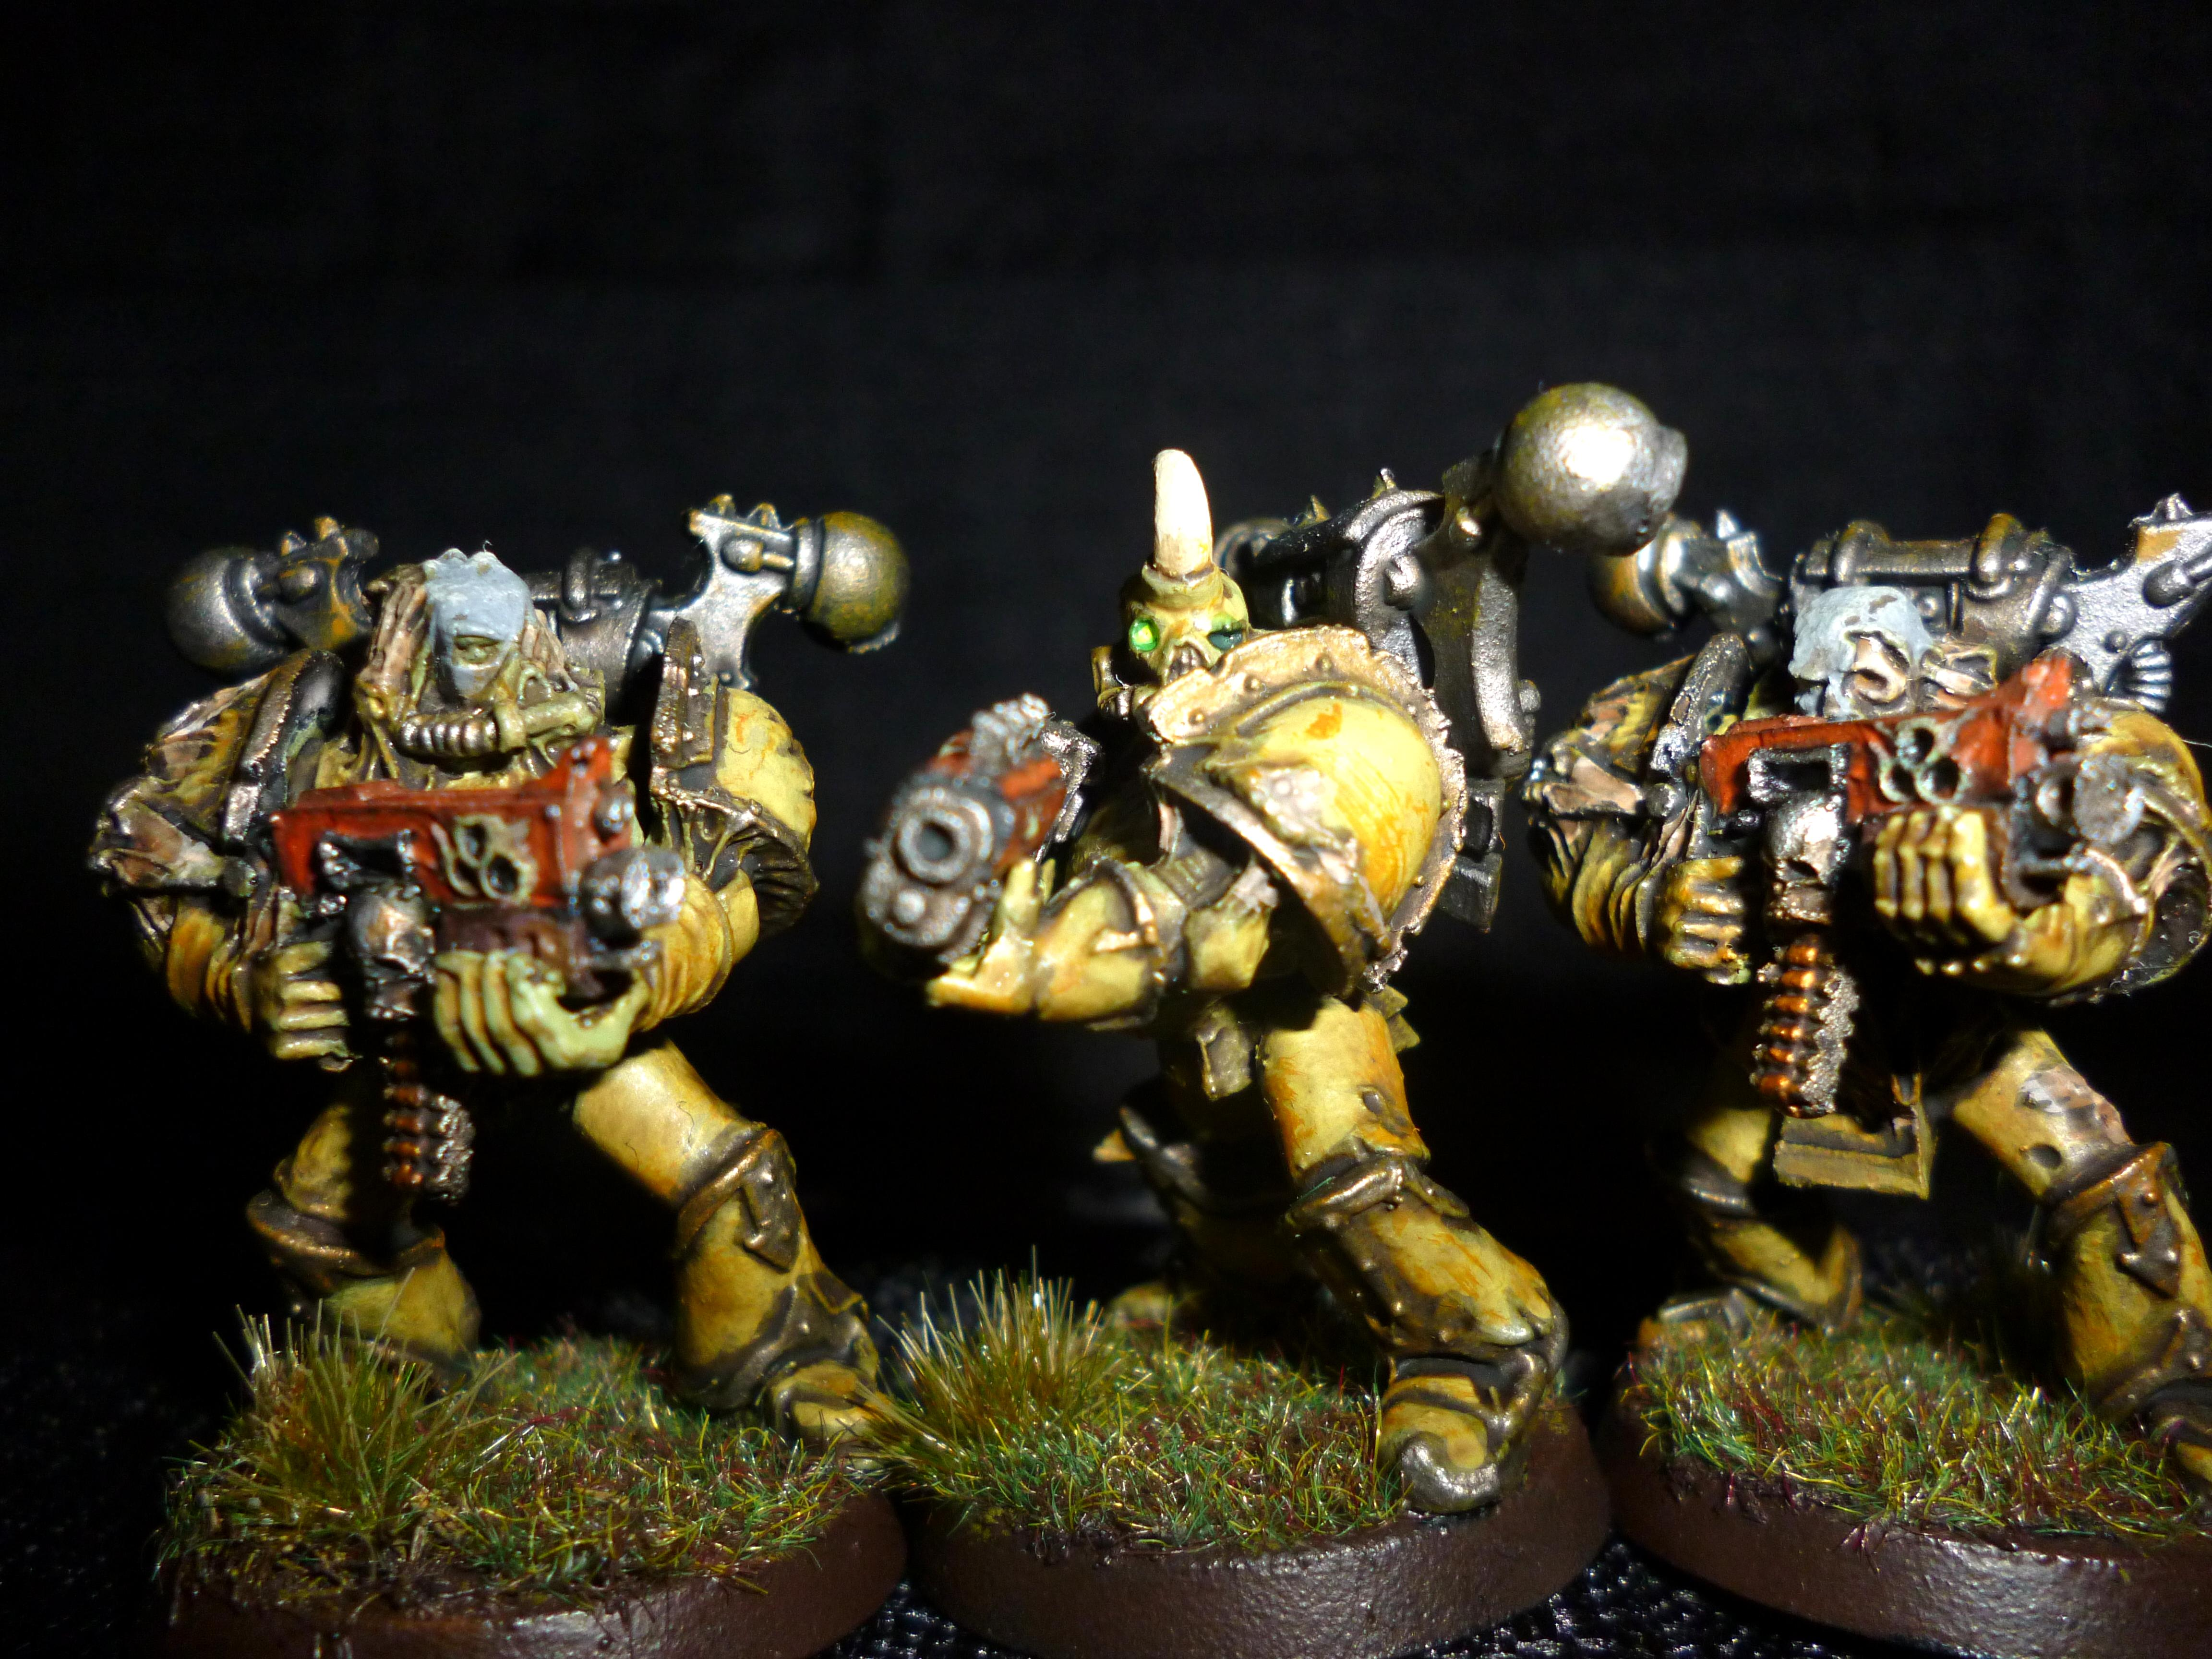 Bolter, Chaos, Chaos Space Marines, Death Guard, Nurgle, Plague, Plague Marines, Rot, Warhammer 40,000